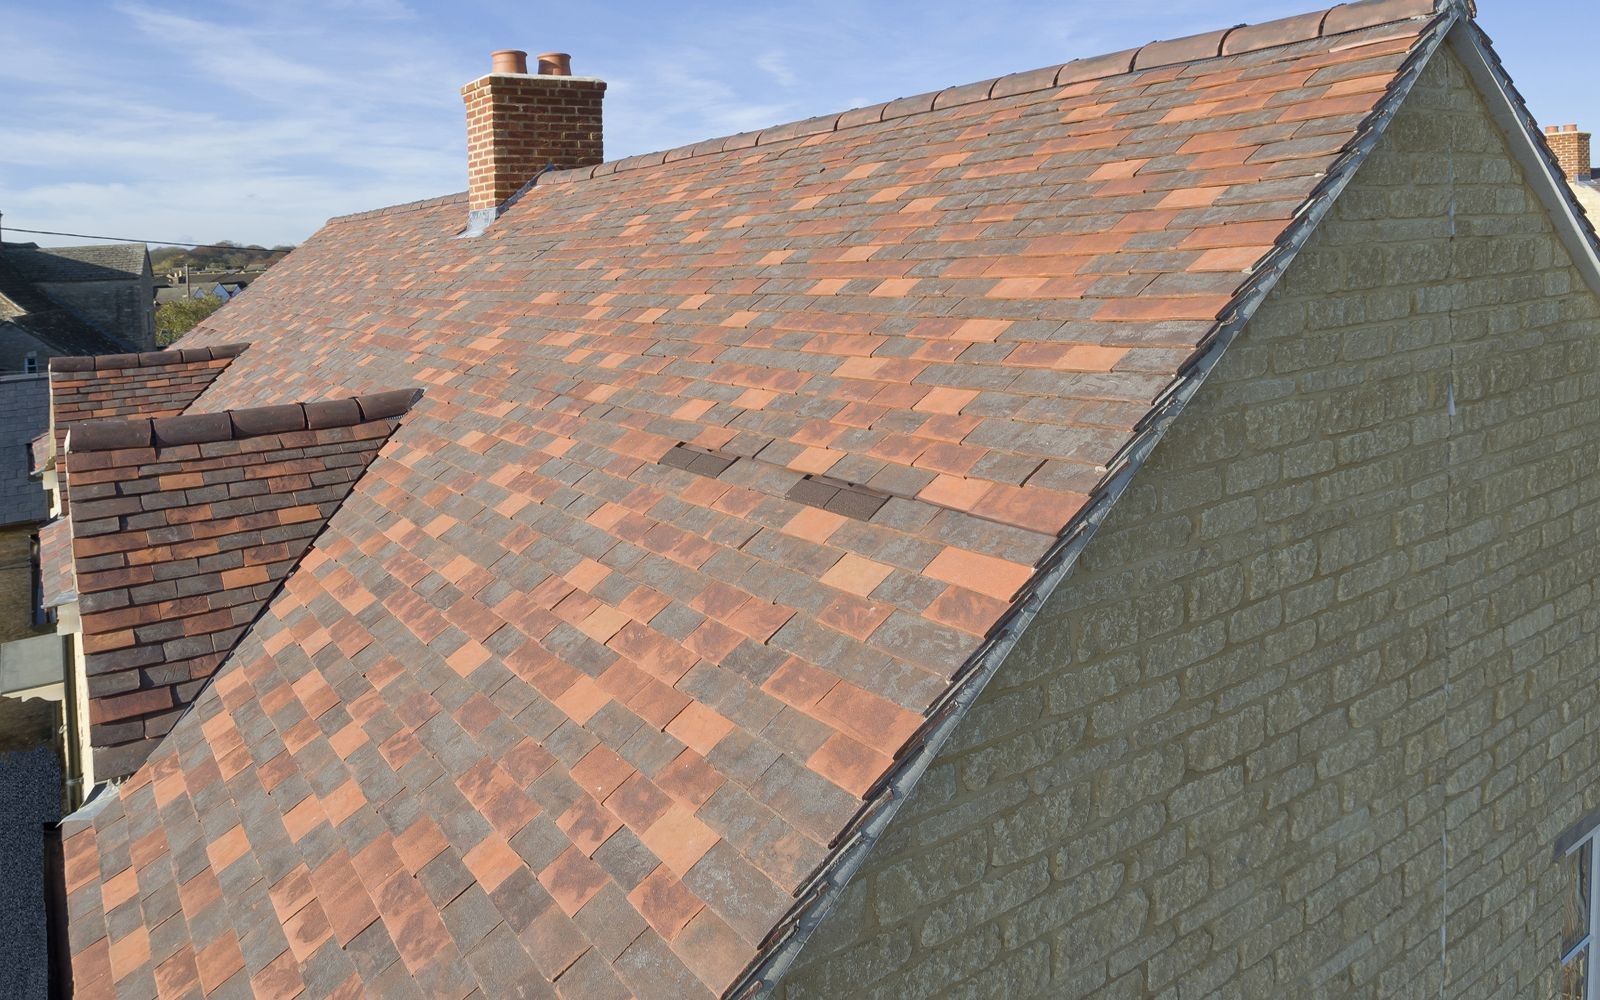 Marley Eternit Canterbury Handmade Clay Plain Tiles Were Used To Create A Unique Blend